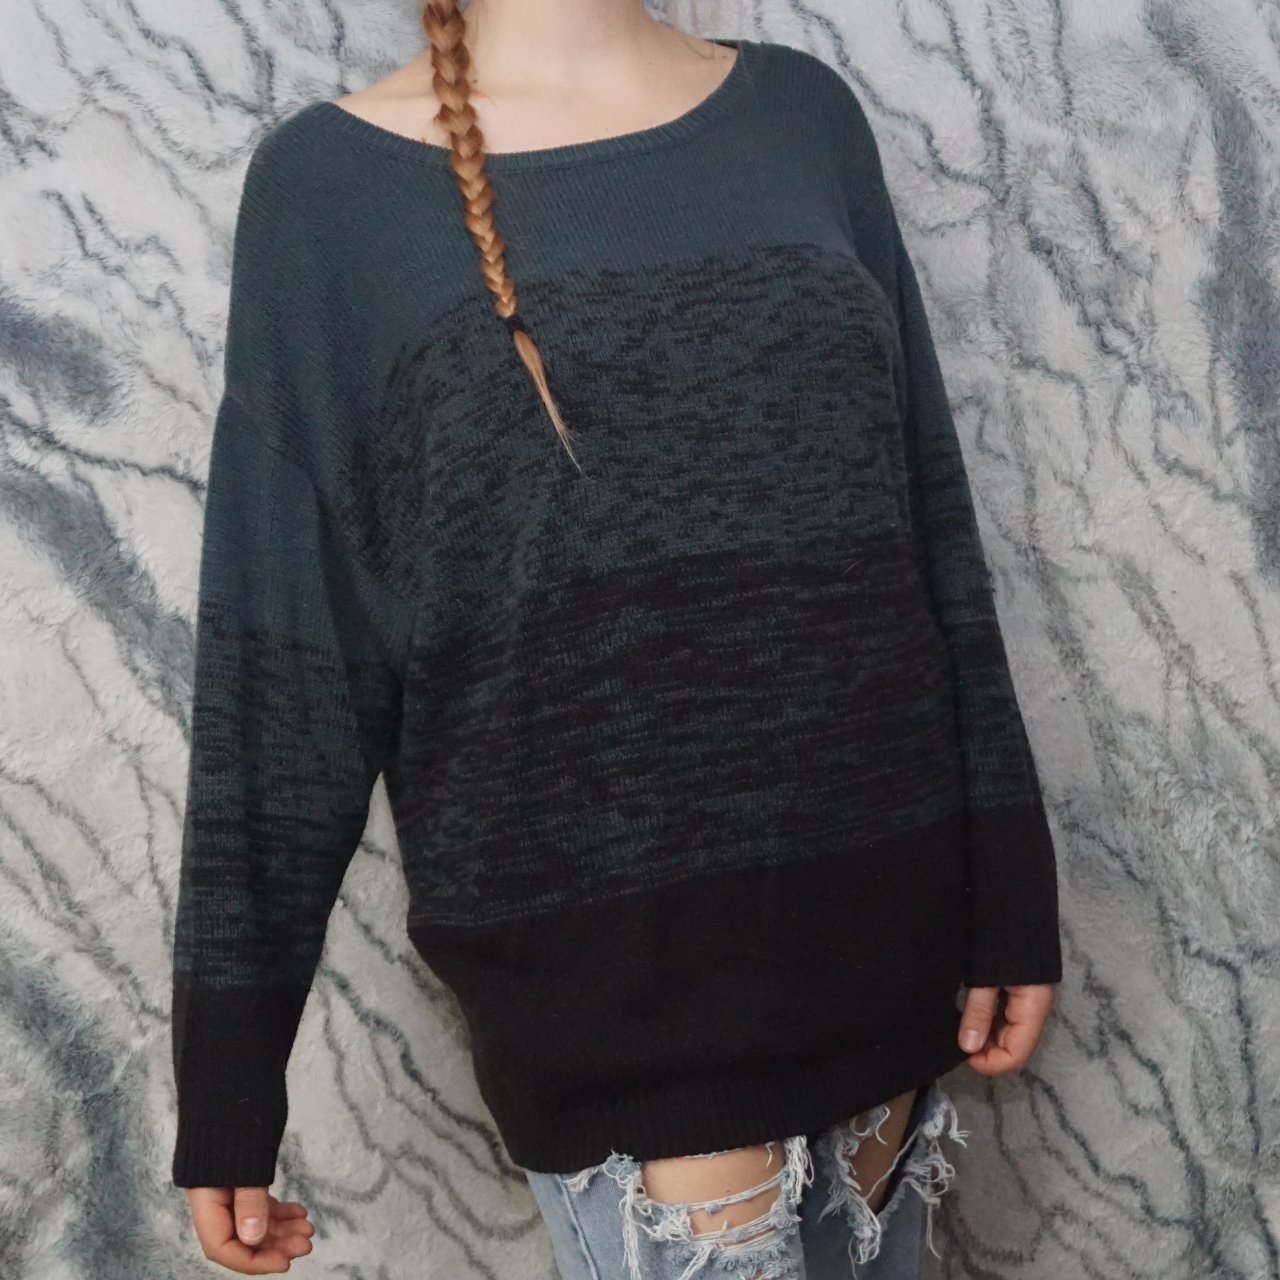 Product Image 1 - Divided Teal Black Knit Sweater Size